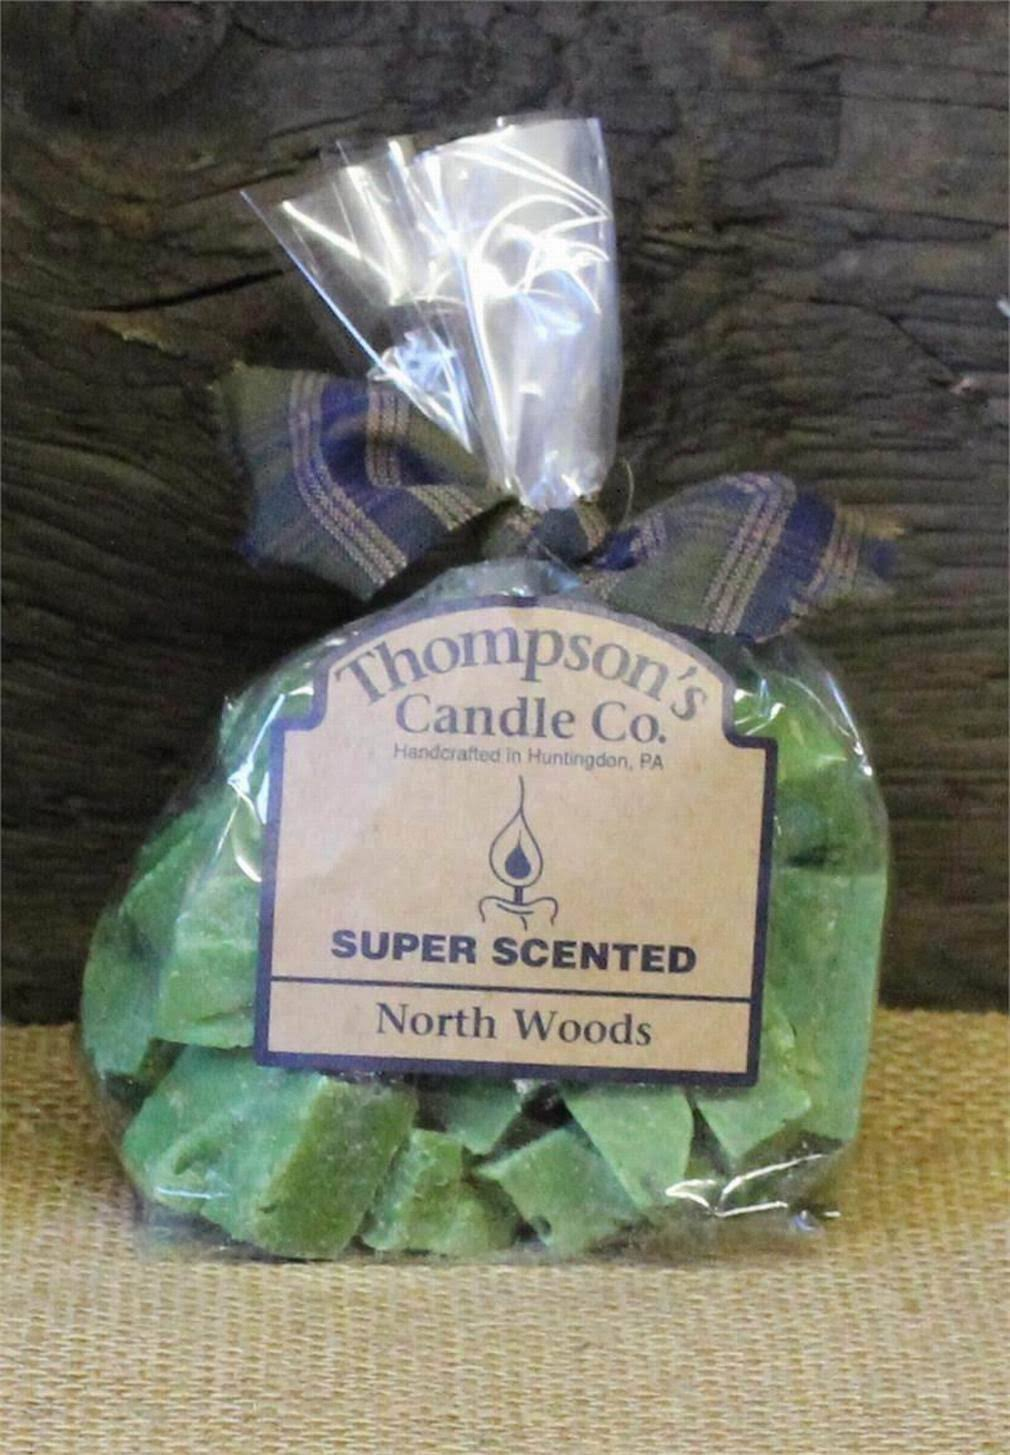 Thompson Candle Co Super Scented Crumbles Tarts Wax Melts 6 oz North Woods